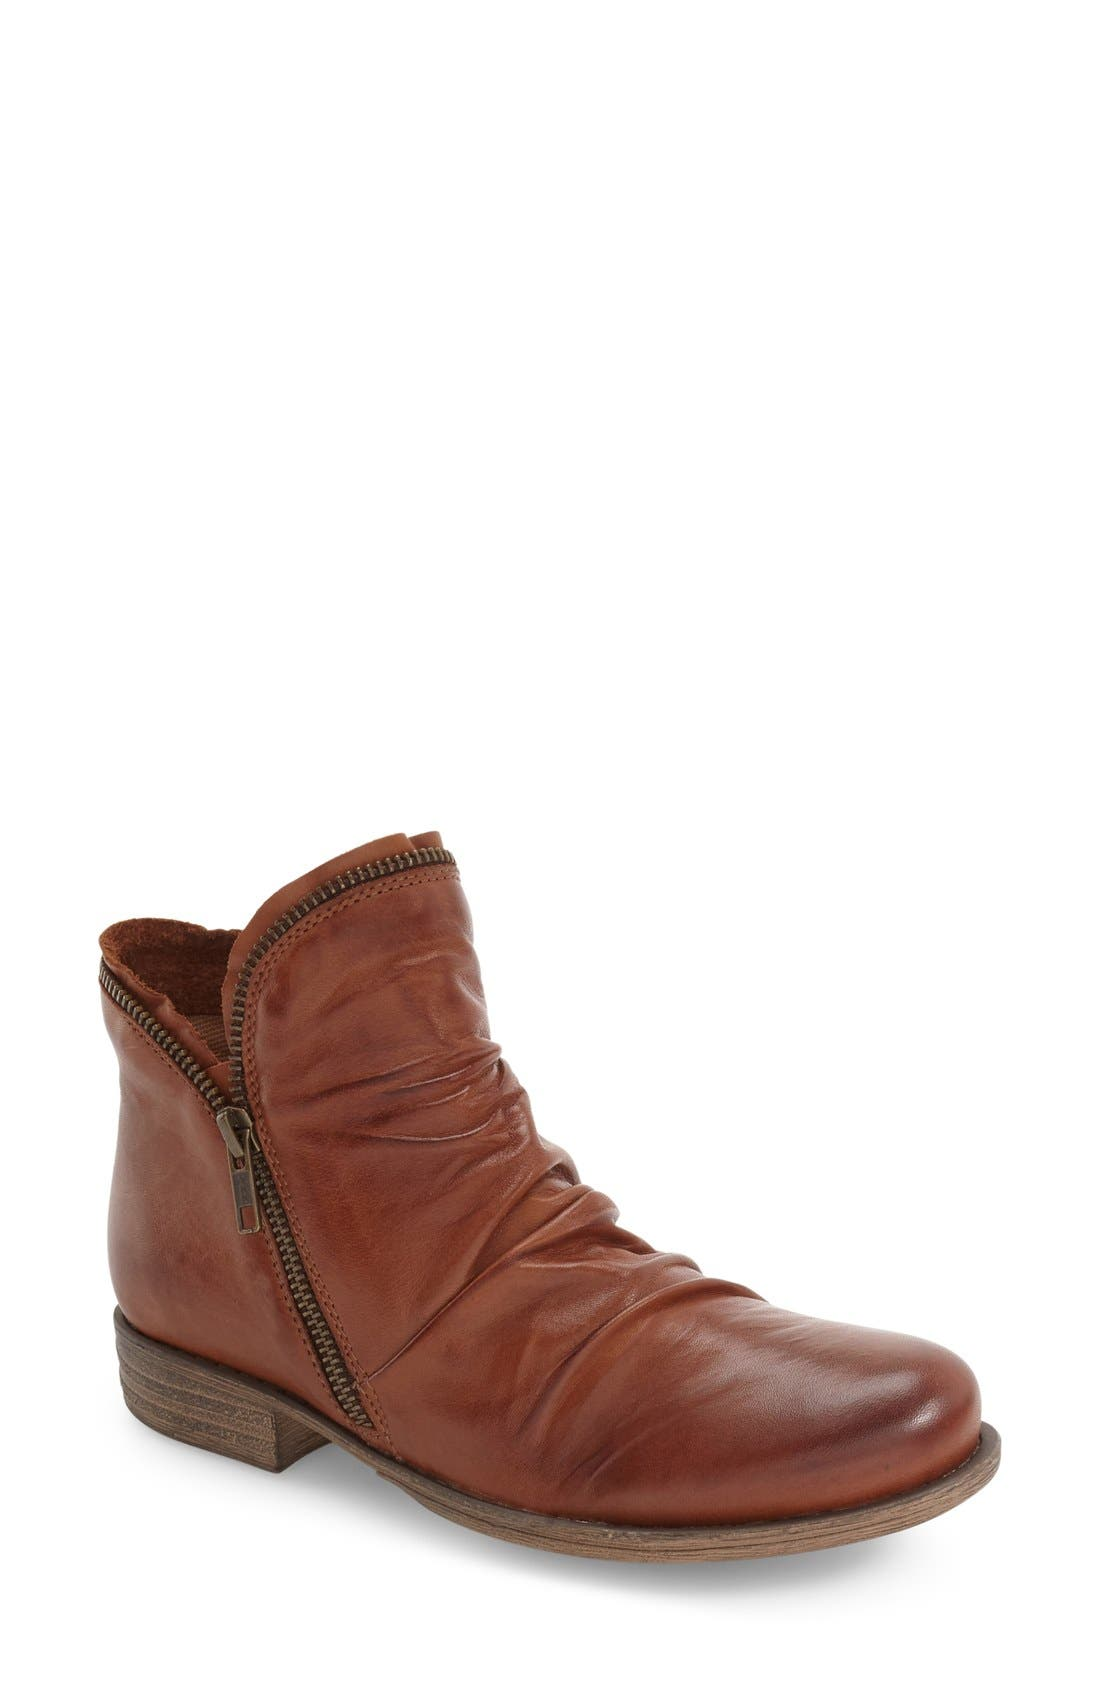 Alternate Image 1 Selected - Miz Mooz 'Luna' Ankle Boot (Women)